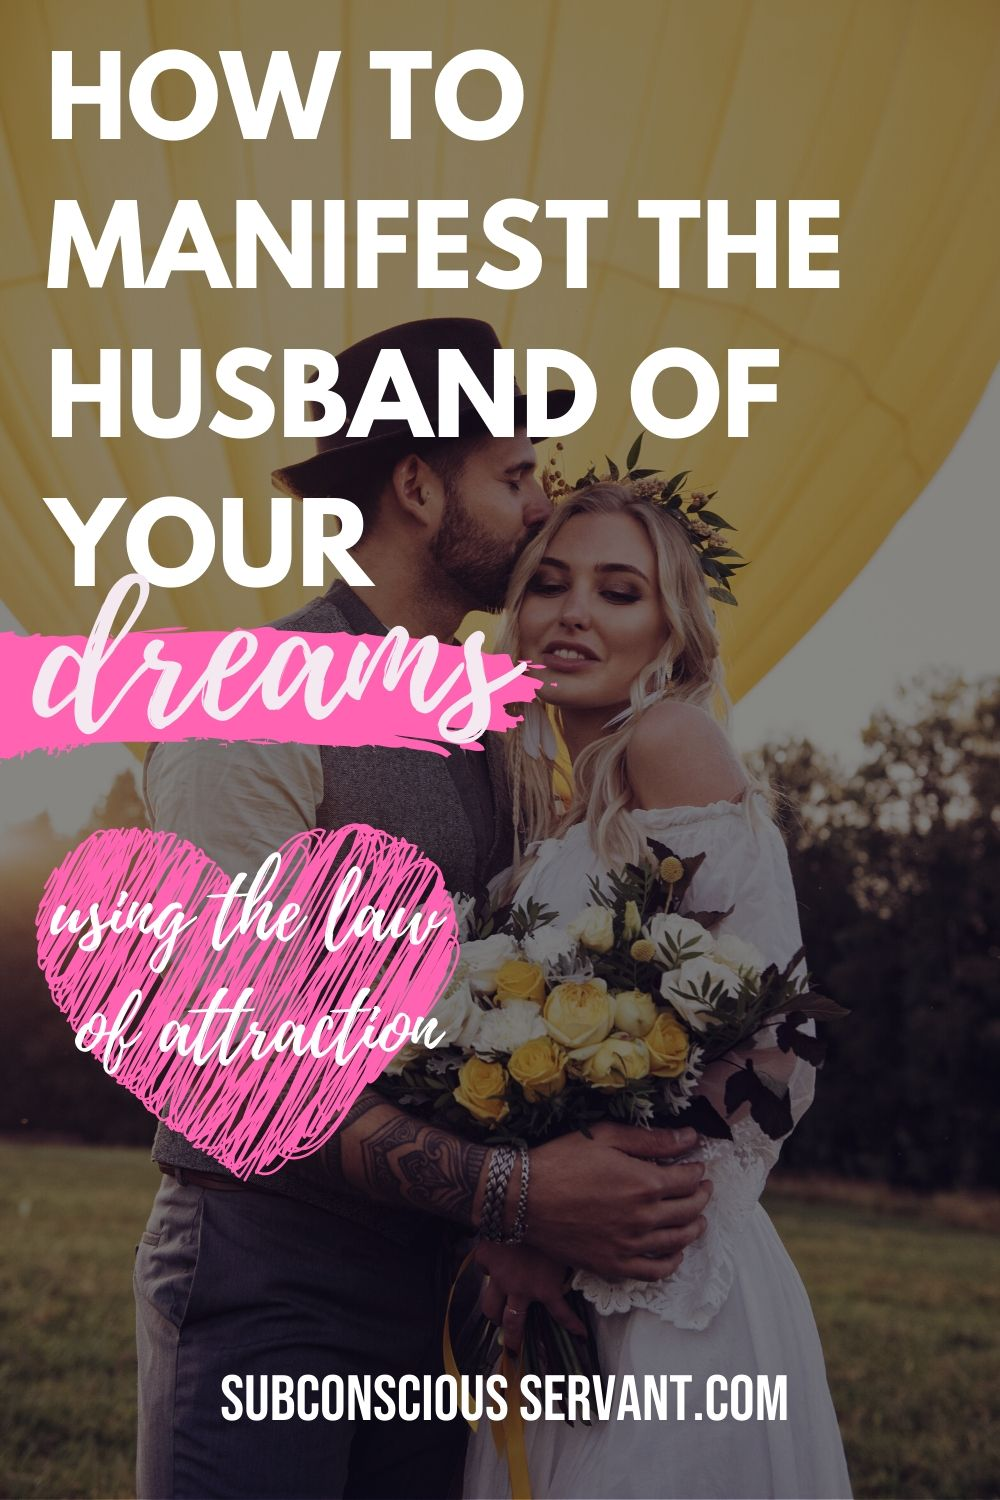 How To Attract A Husband - Law Of Attraction